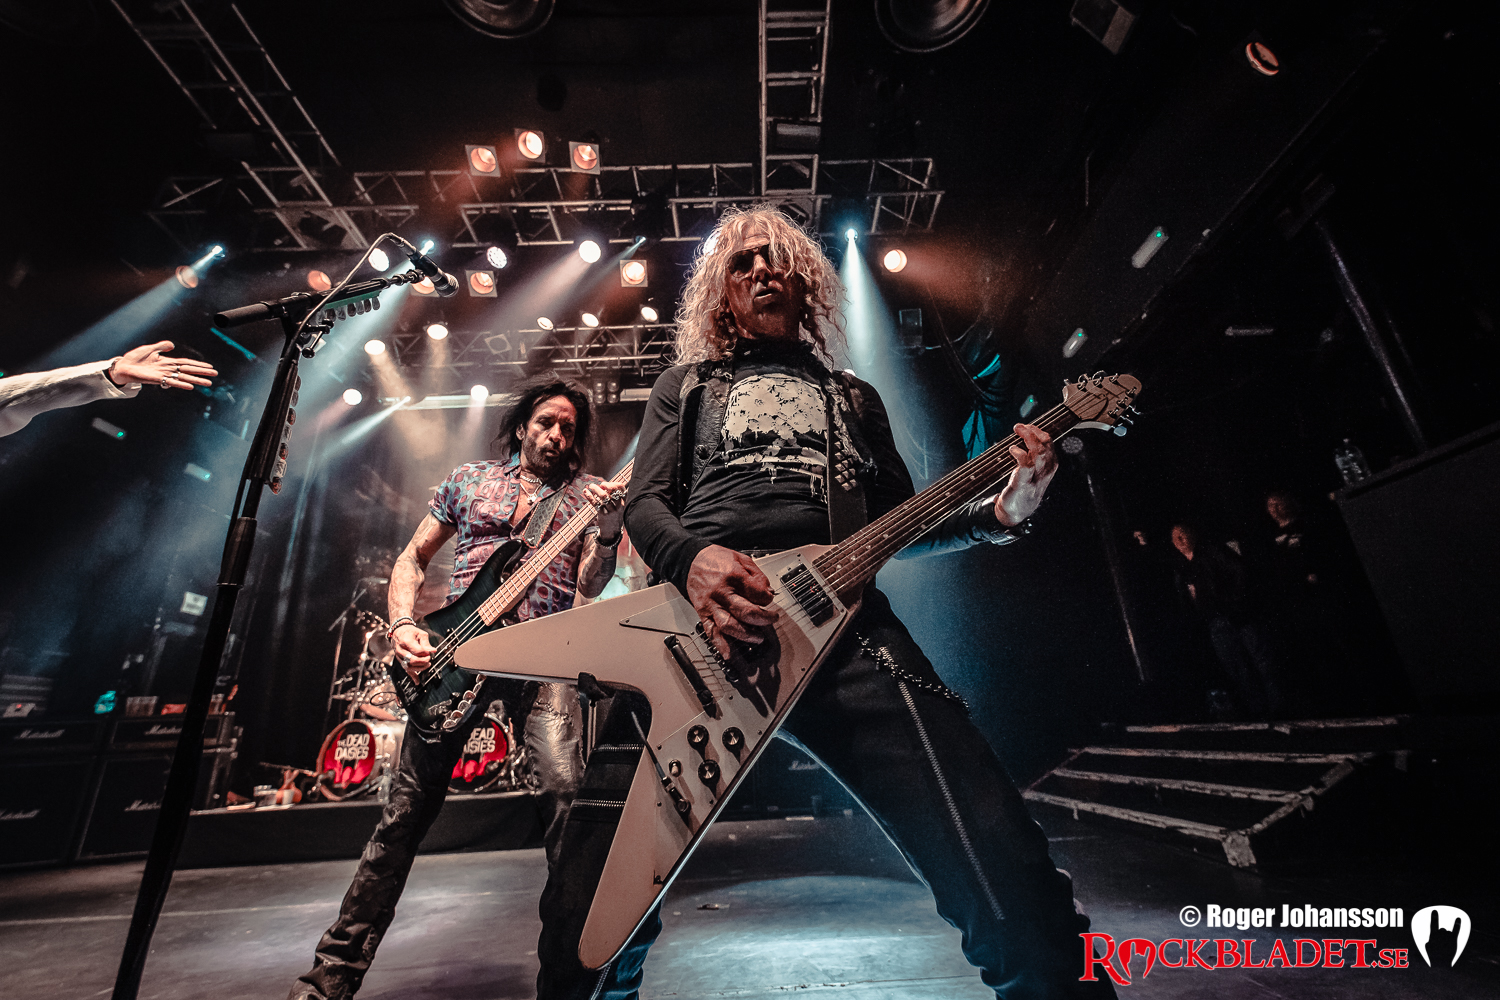 180410-thedeaddaisies-RJ-Bild05